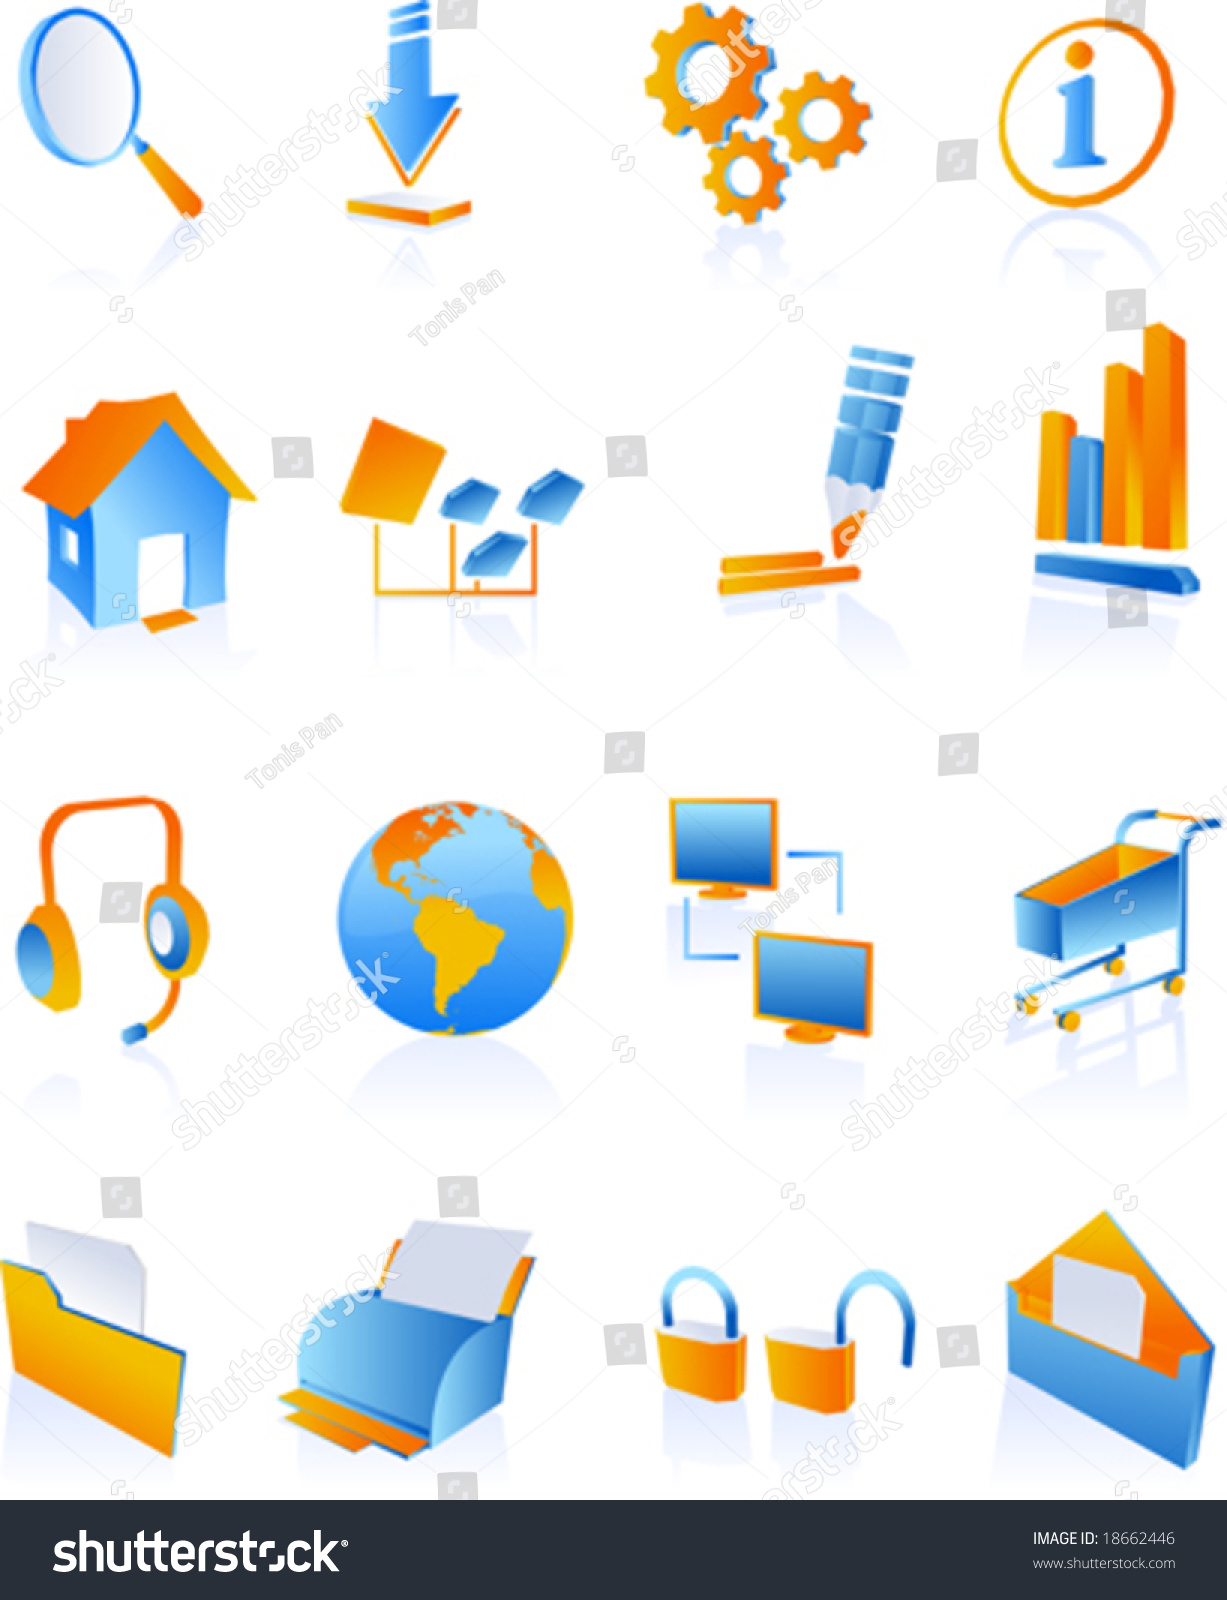 Vector clip art icons symbols websites stock vector 18662446 vector clip art icons and symbols for websites and internet in blue linear gradients buycottarizona Choice Image